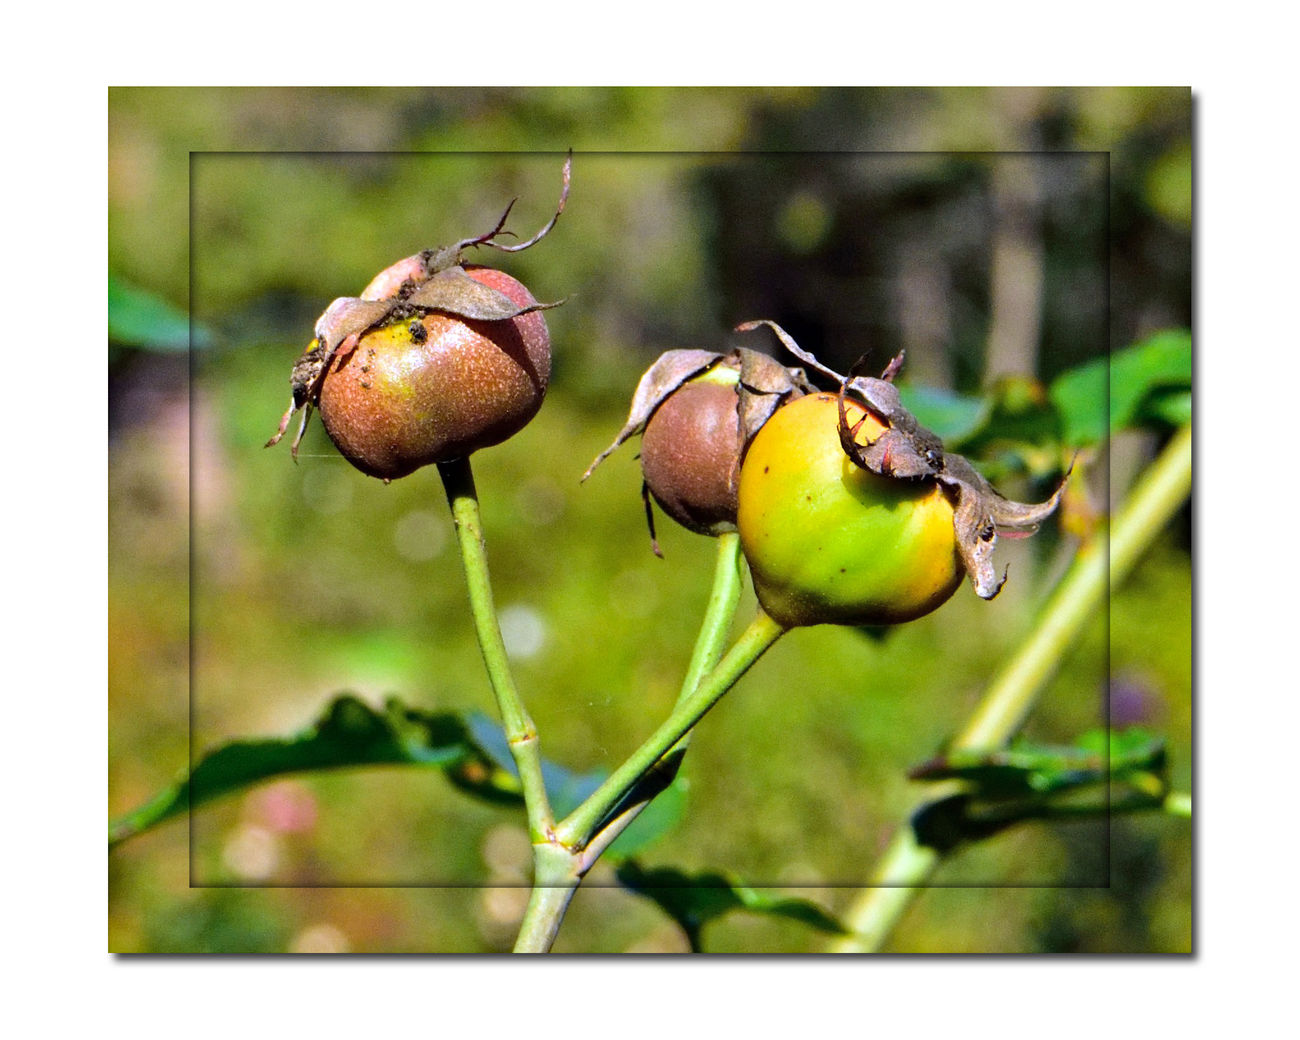 Rose Hips 1 Marcom Amphitheater Of Roses Oakland, CA Rose Haw Rose Hep Rose HipsNature Fruit Of Rose Plant Post Pollination Of Flowers Ripen Late Summer Through Autumn Botany Rich In Vitamin C Oils Are Used For Fragrances Carotenoids: Beta-carotene,lutein,zeazanthin,lycopene Itching Powder Made From Fine Hairs Inside Hips Used For Teas,jam,jelly,syrup,soup,wine,beverages Beauty In Nature Healthy Eating Fruit Food